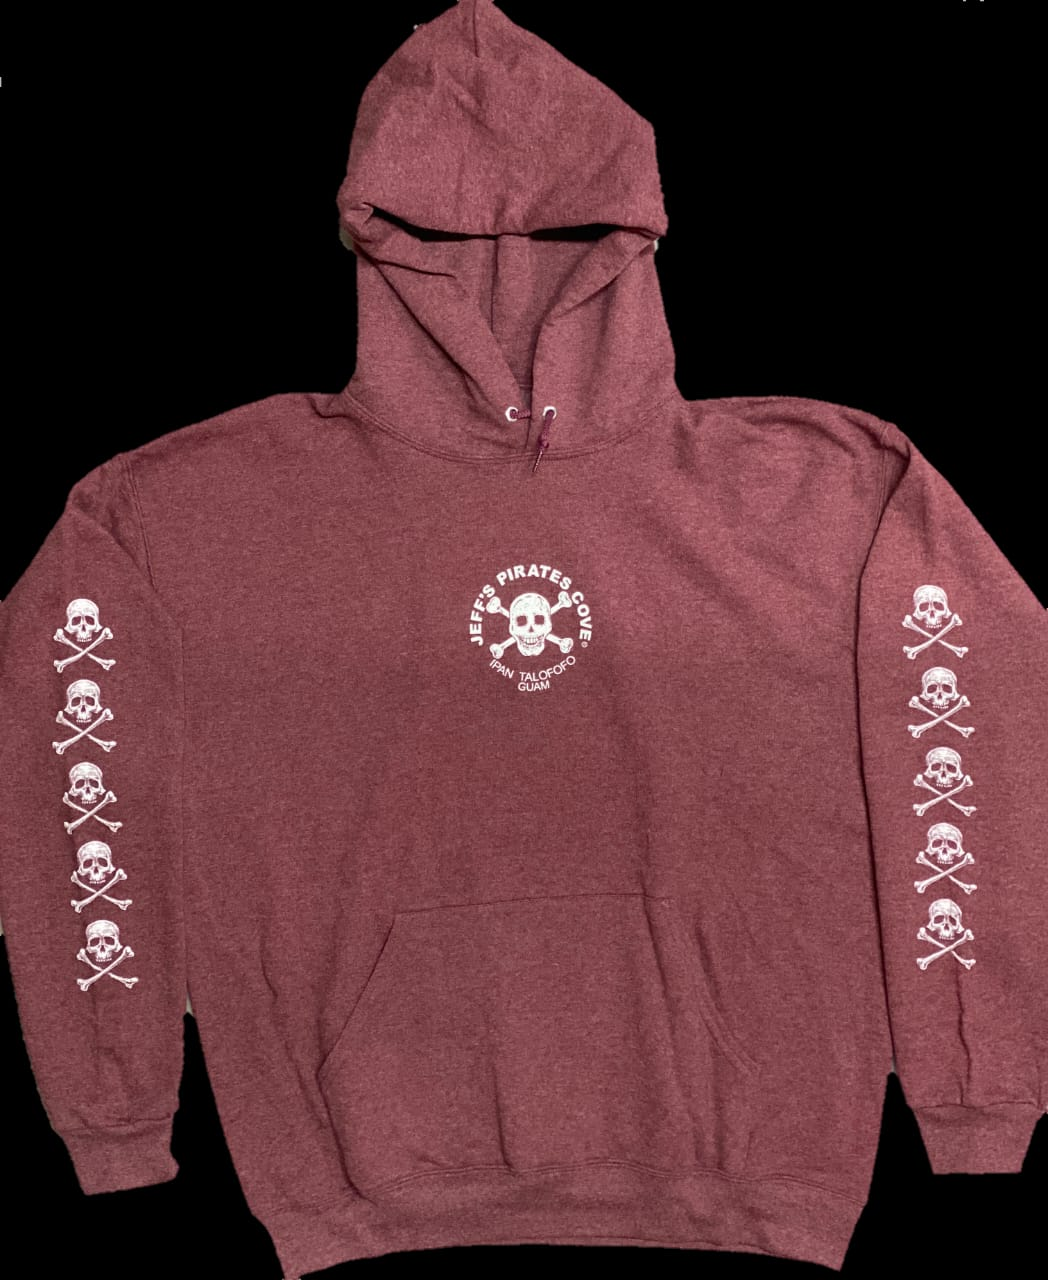 Skull & Cross Bone Maroon Pull over Sweater | Jeffs Pirates Cove Chest